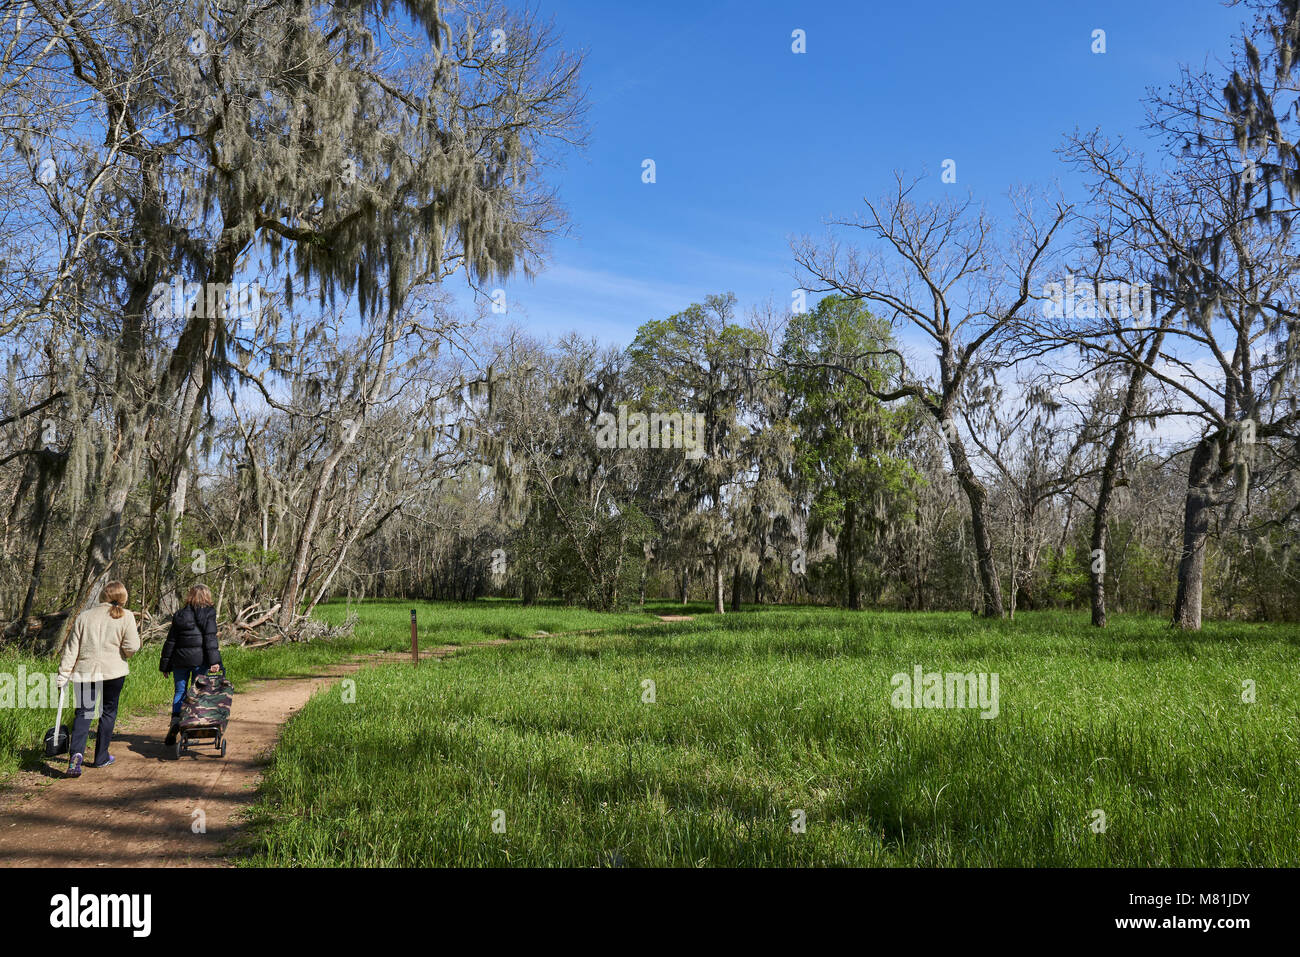 2 Persons walking on one of the many Nature trails that can be found at the Brazos Bend State Park in Texas. - Stock Image